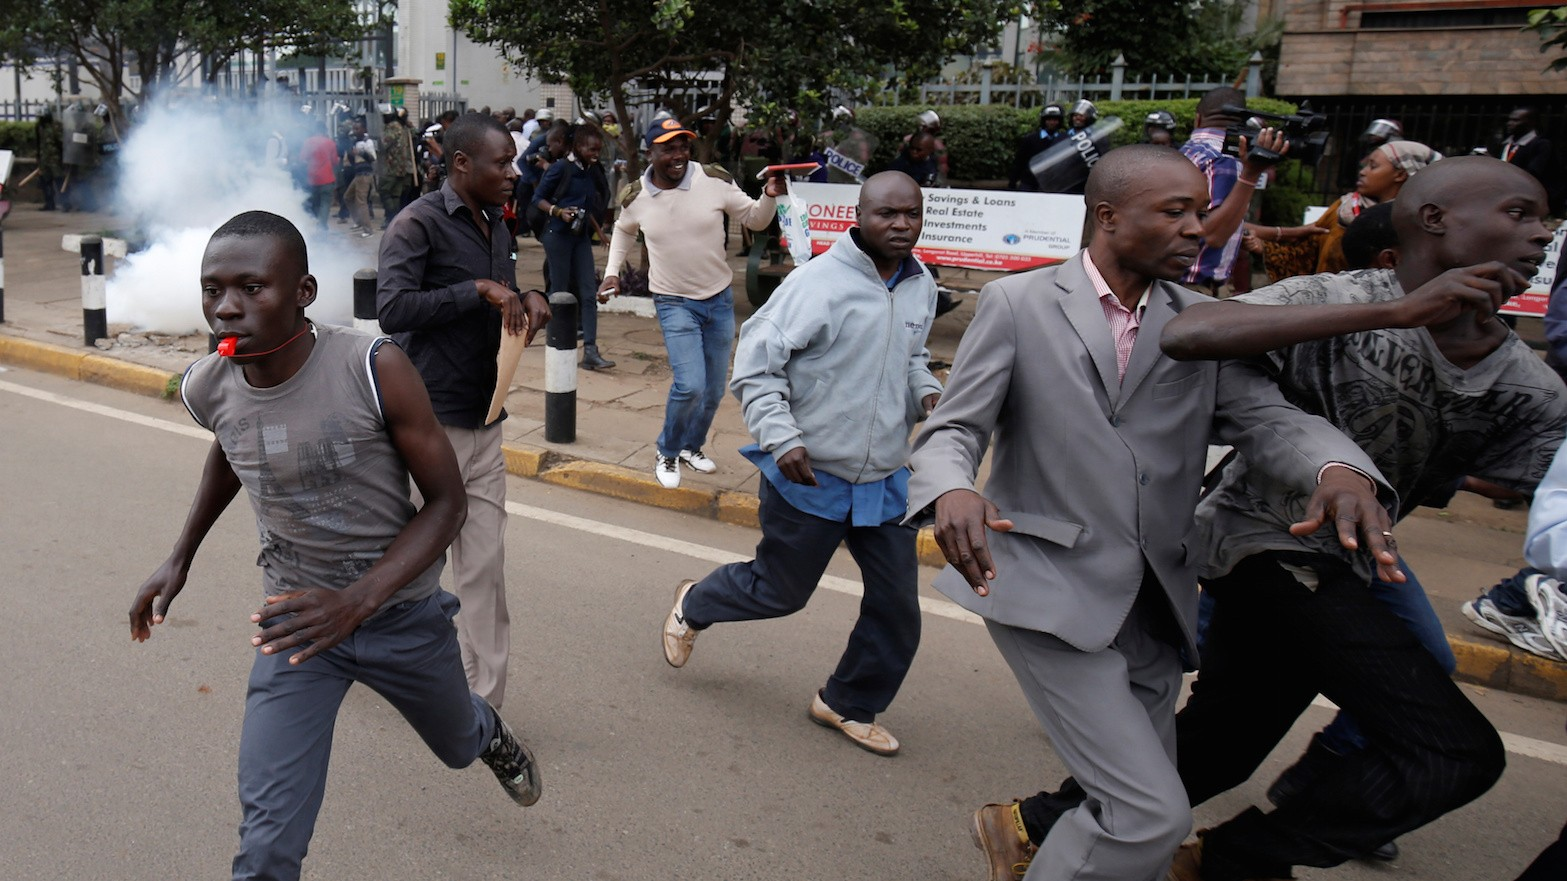 Three Reported Dead After Protesters in Kenya Clash With Police in Dispute Over Election